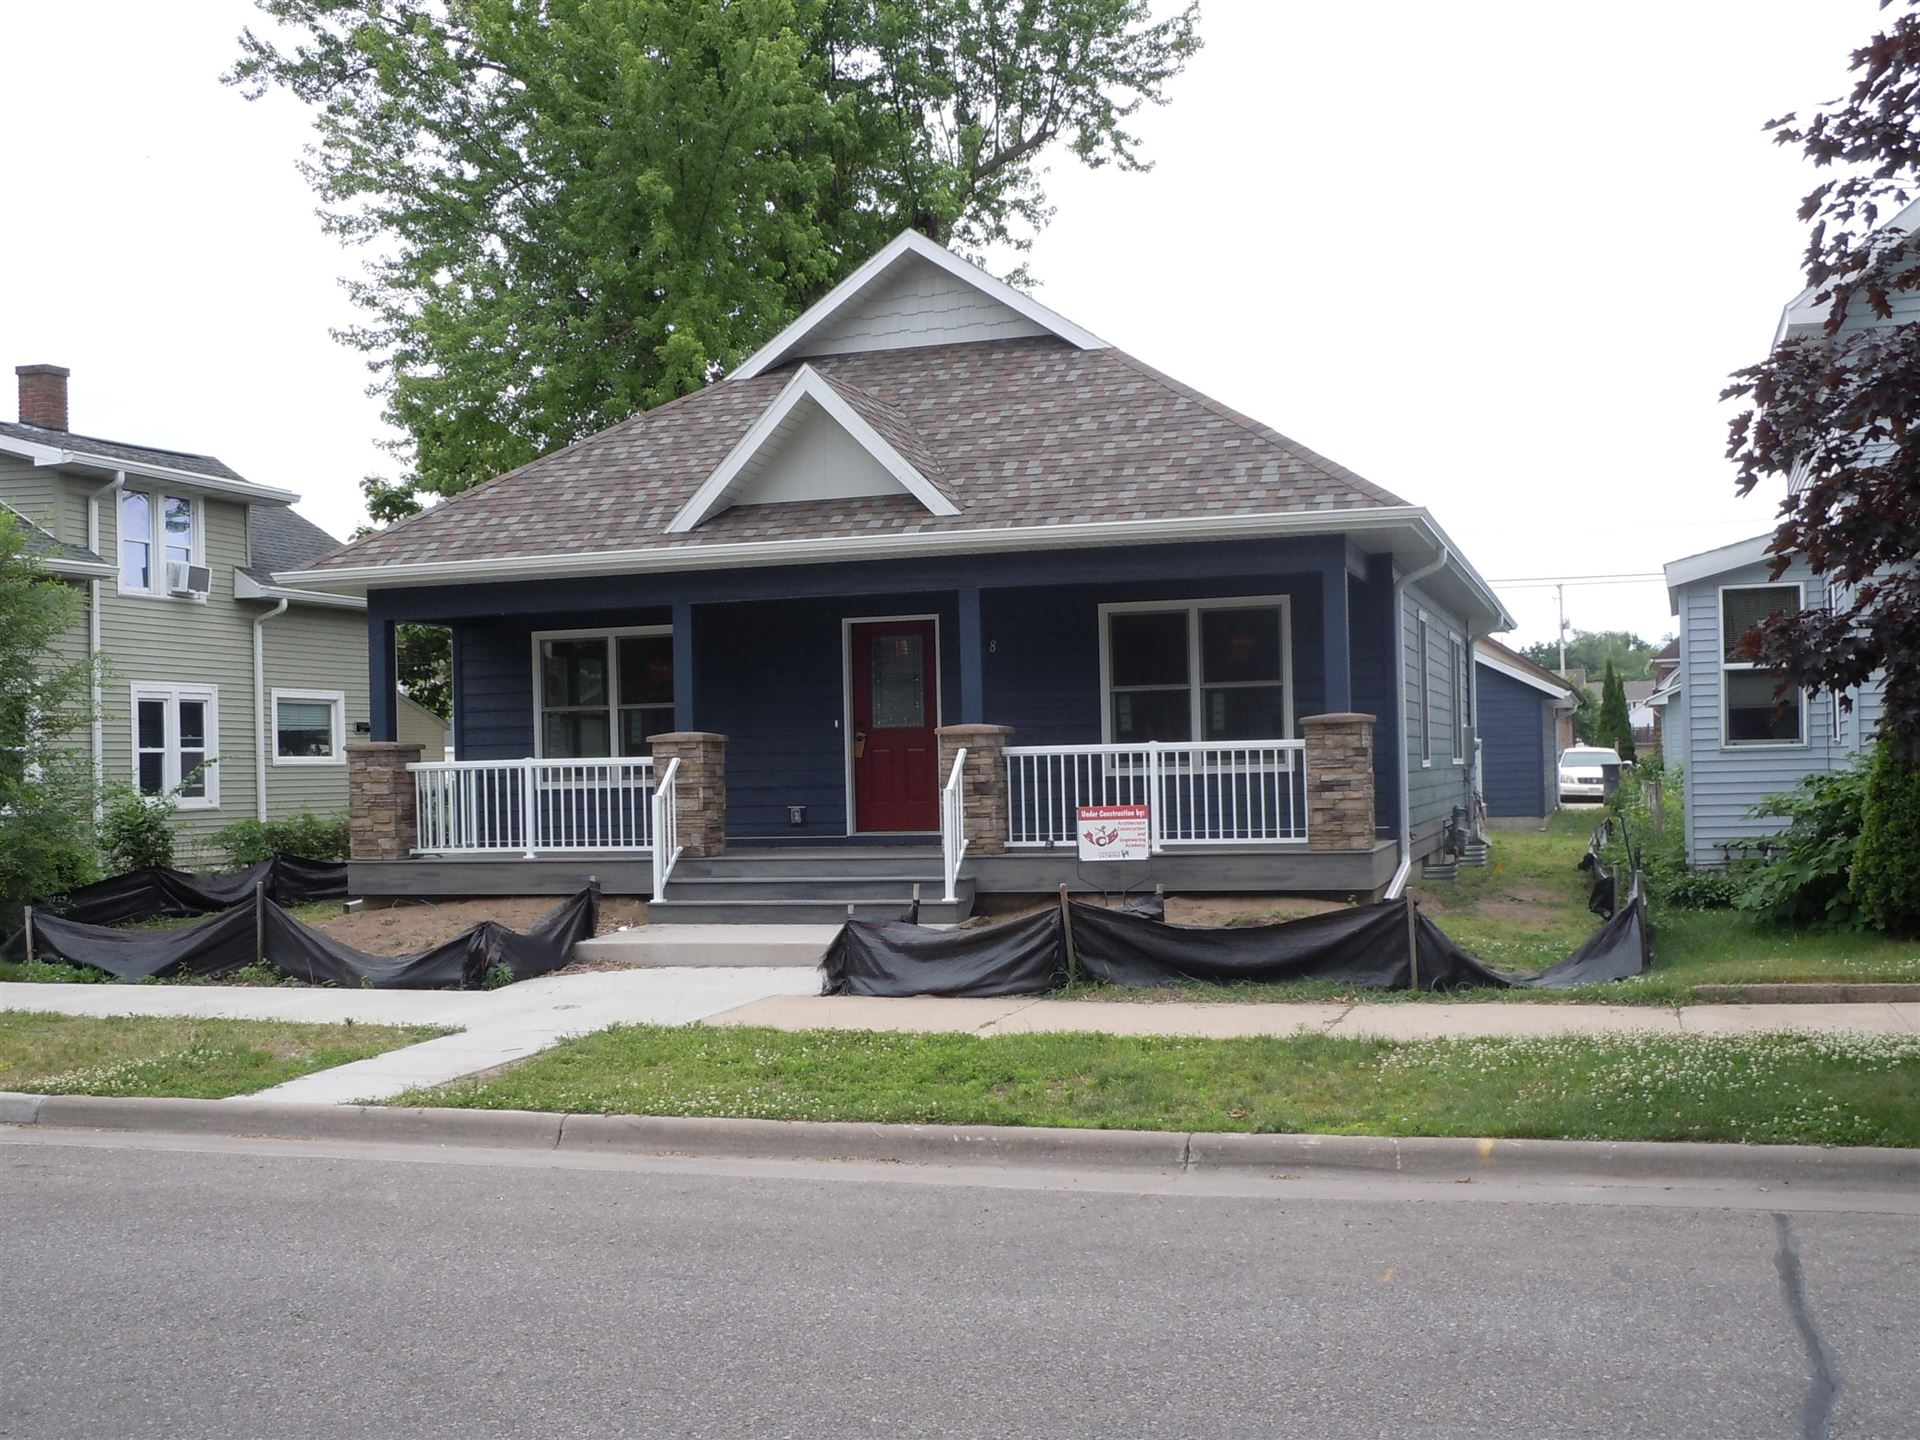 1458 REDFIELD ST, La Crosse, WI 54601 - MLS#: 1694822